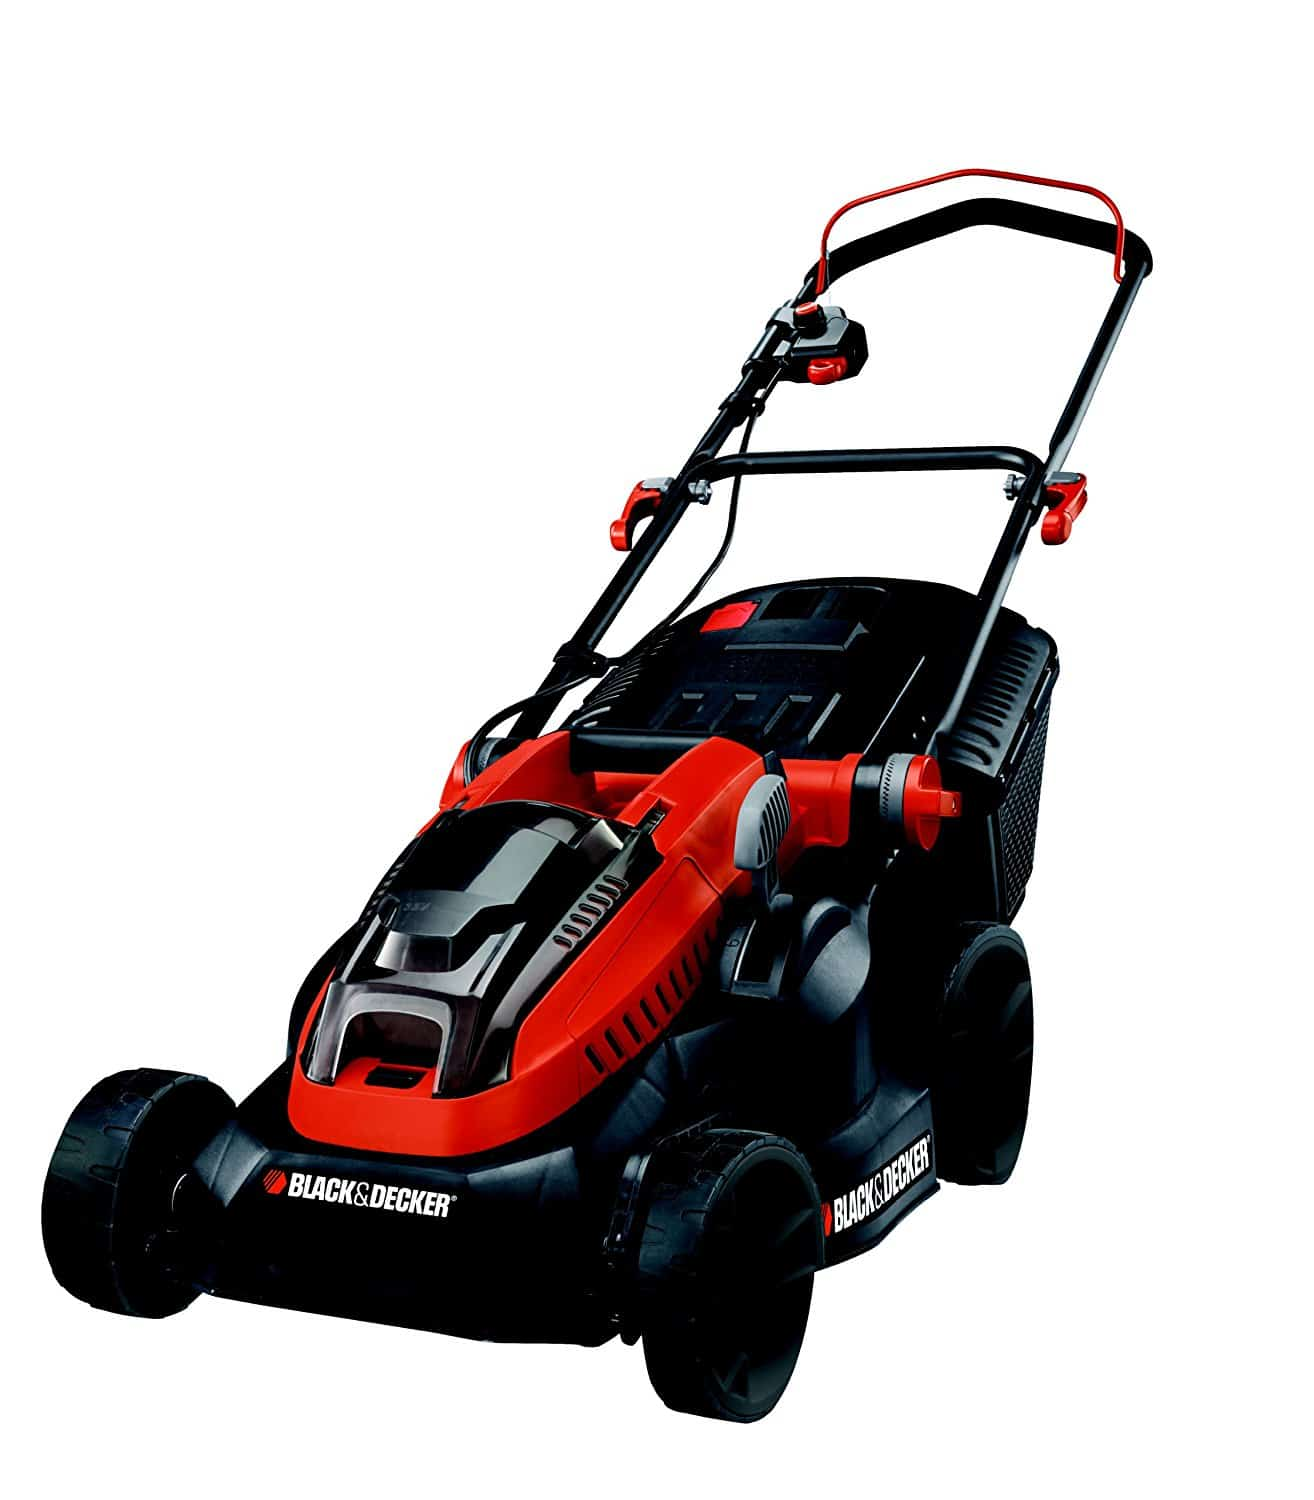 Black+Decker Lithium-Ion Lawn Mower